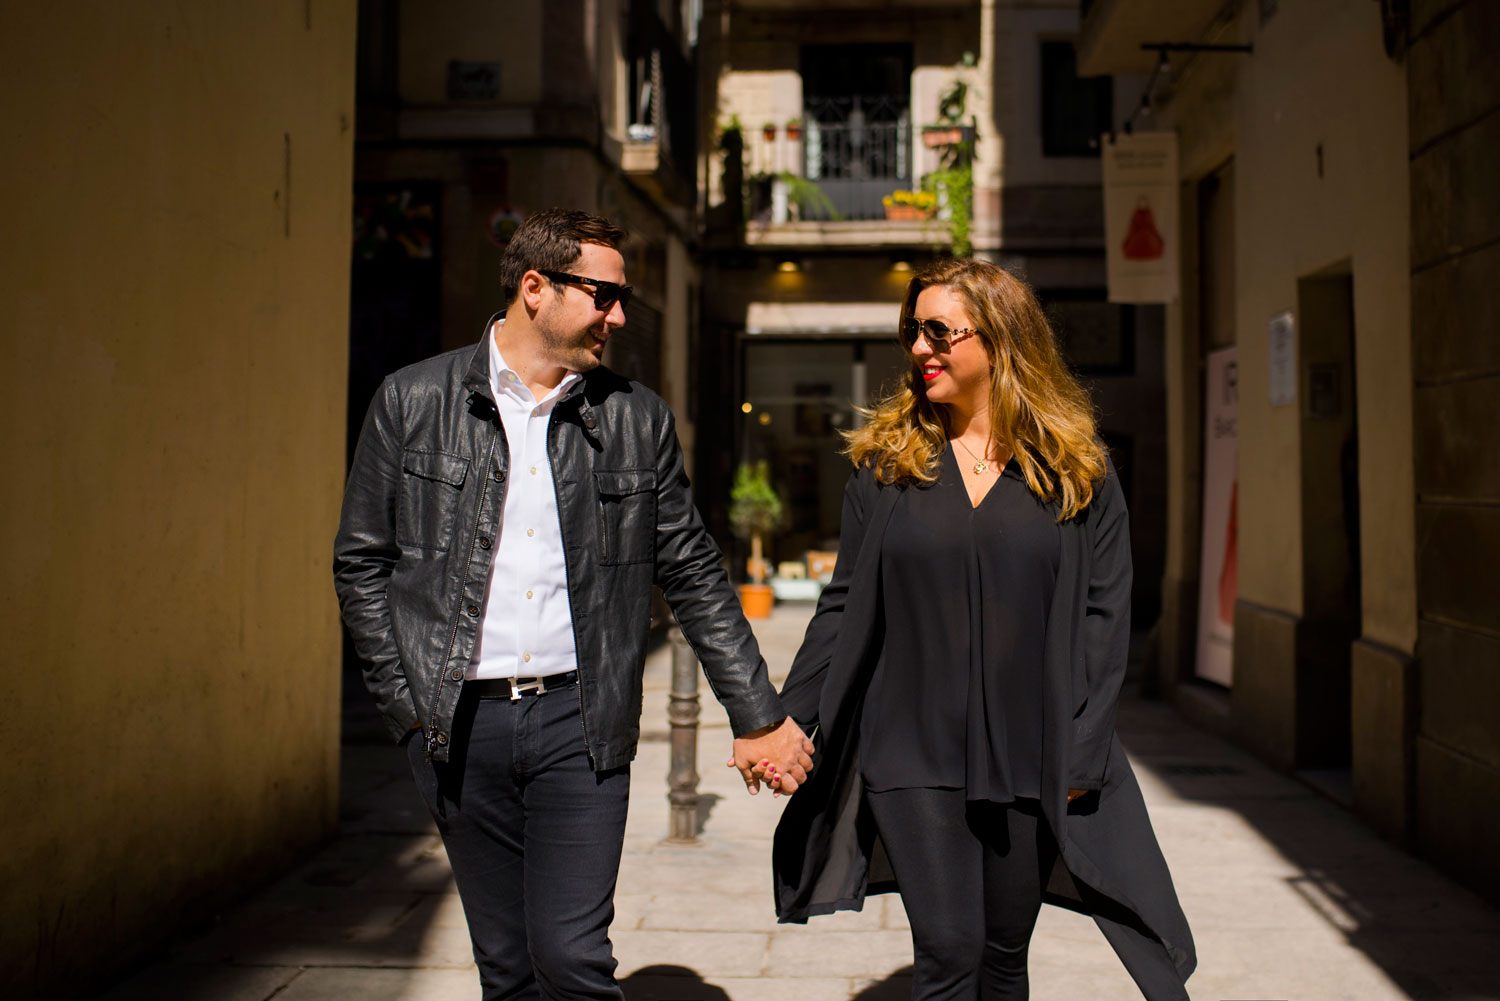 Michelle Durpetti and Collin Pierson engagement photos in Barcelona, Spain holding hands